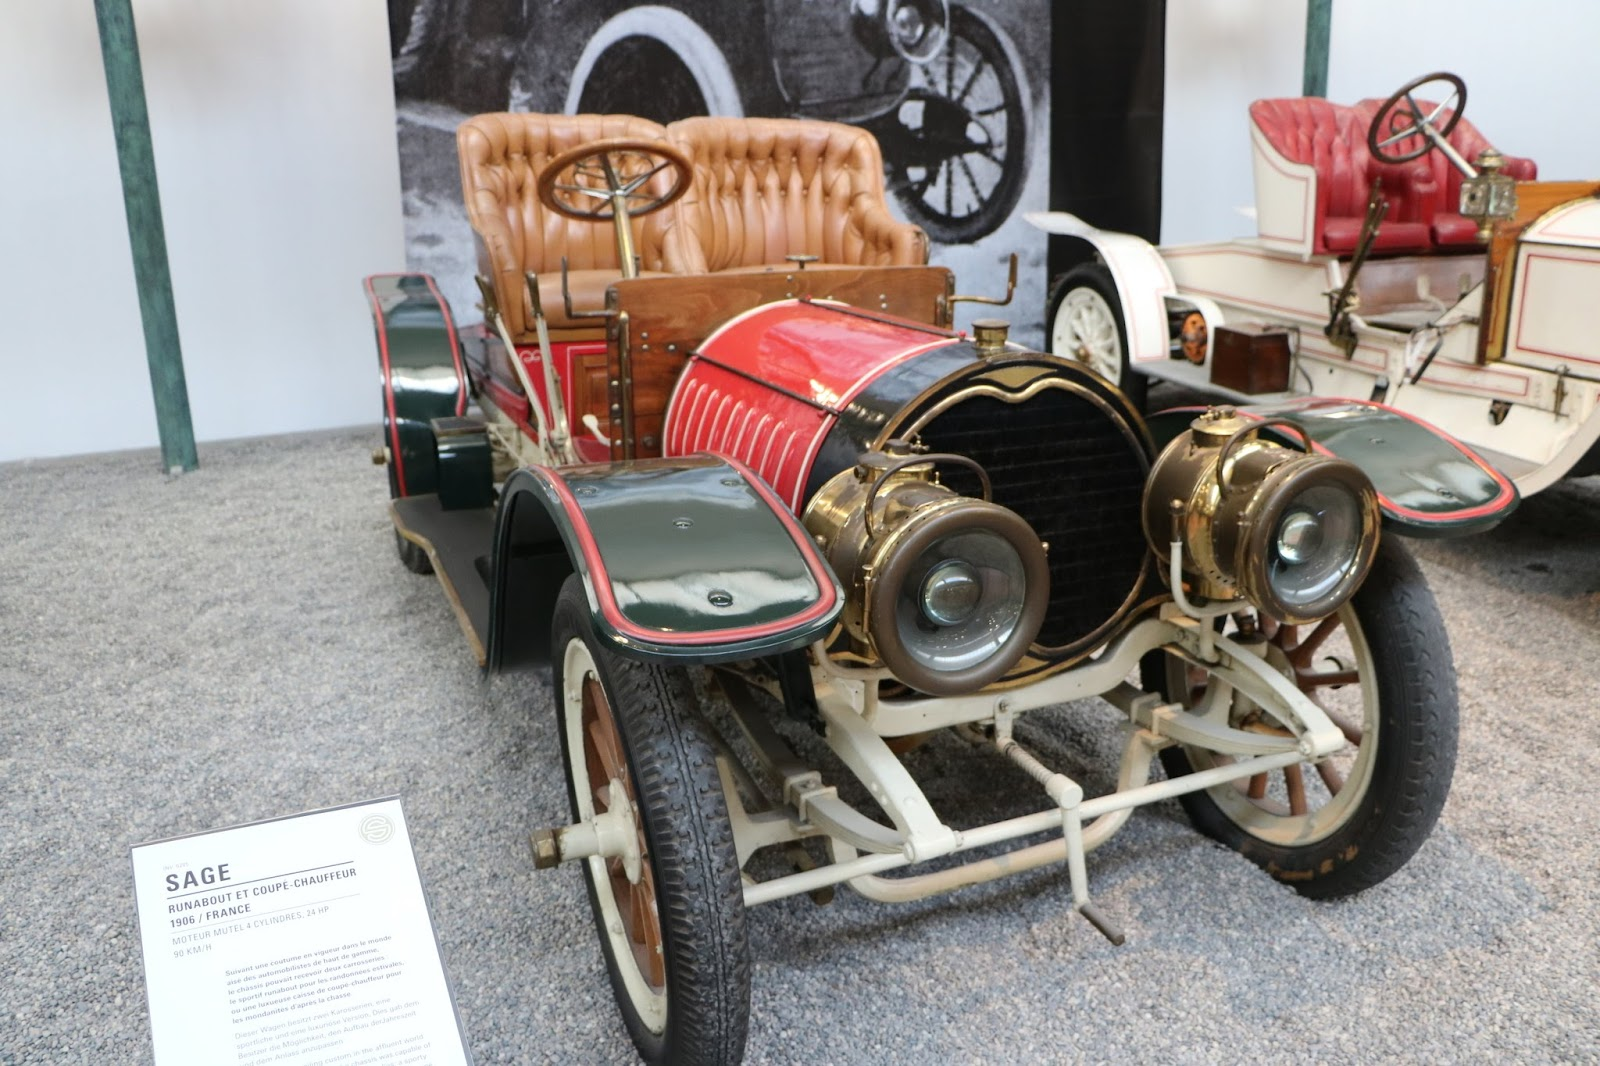 Schlumpf Collection 0173 - 1906 Sage Runabout et Coupe-Chauffeur.jpg